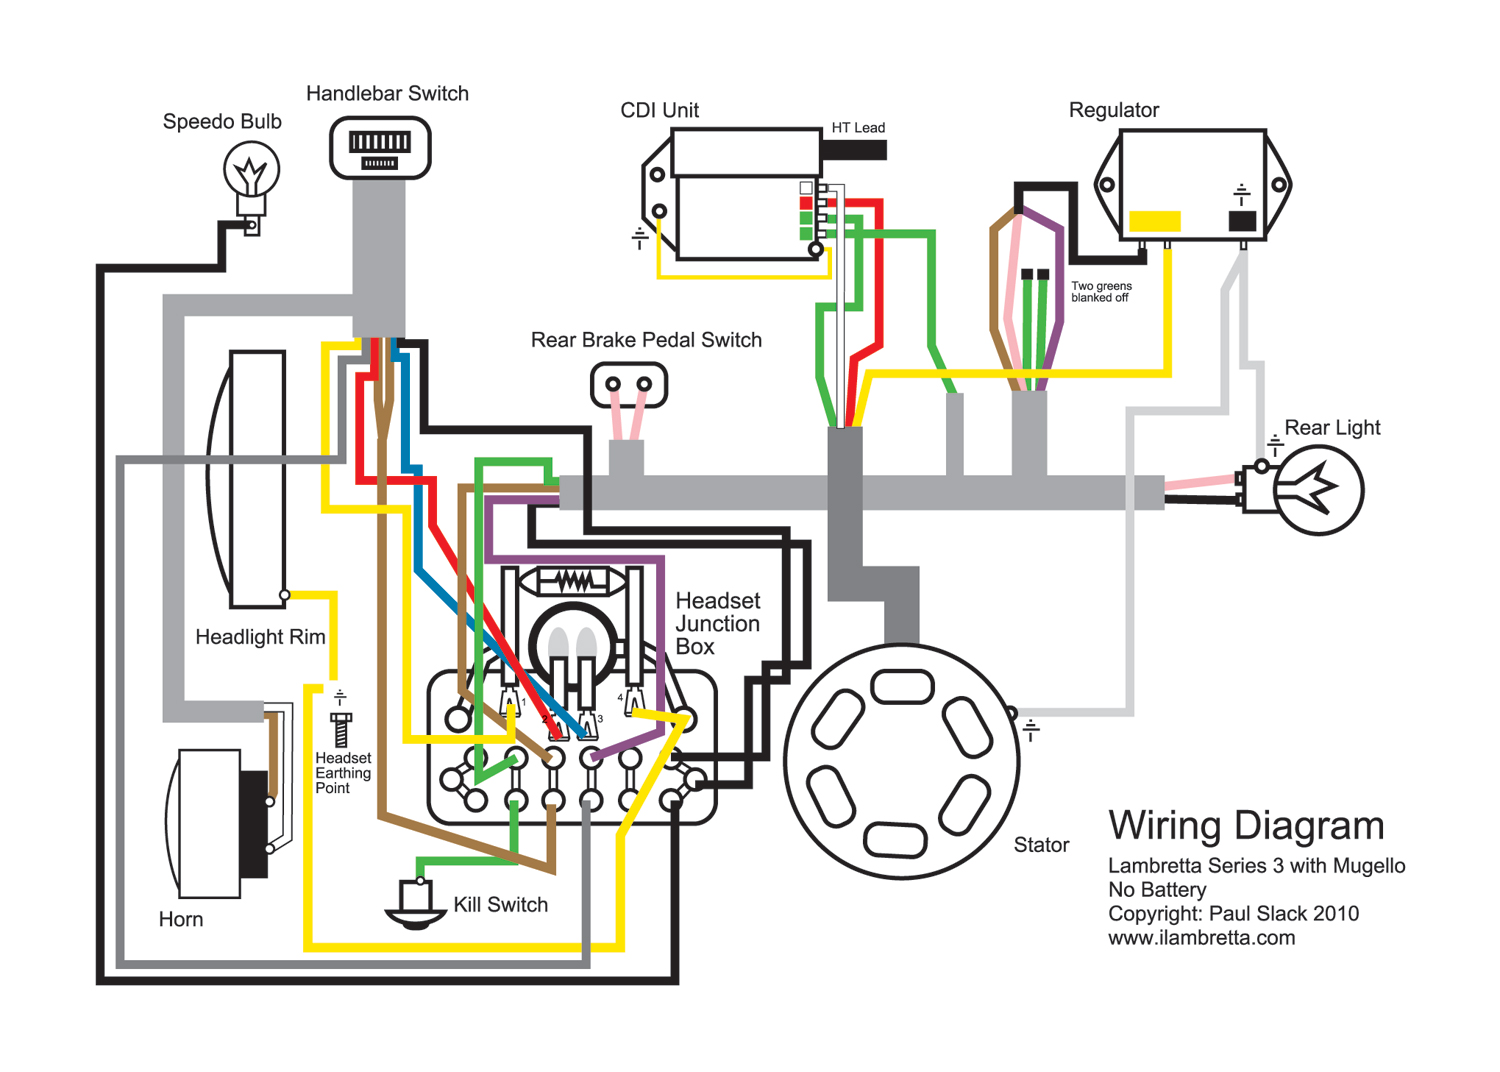 12v wire diagram wiring diagram schematics 12v wiring basics dc 12v wiring guide [ 1500 x 1072 Pixel ]